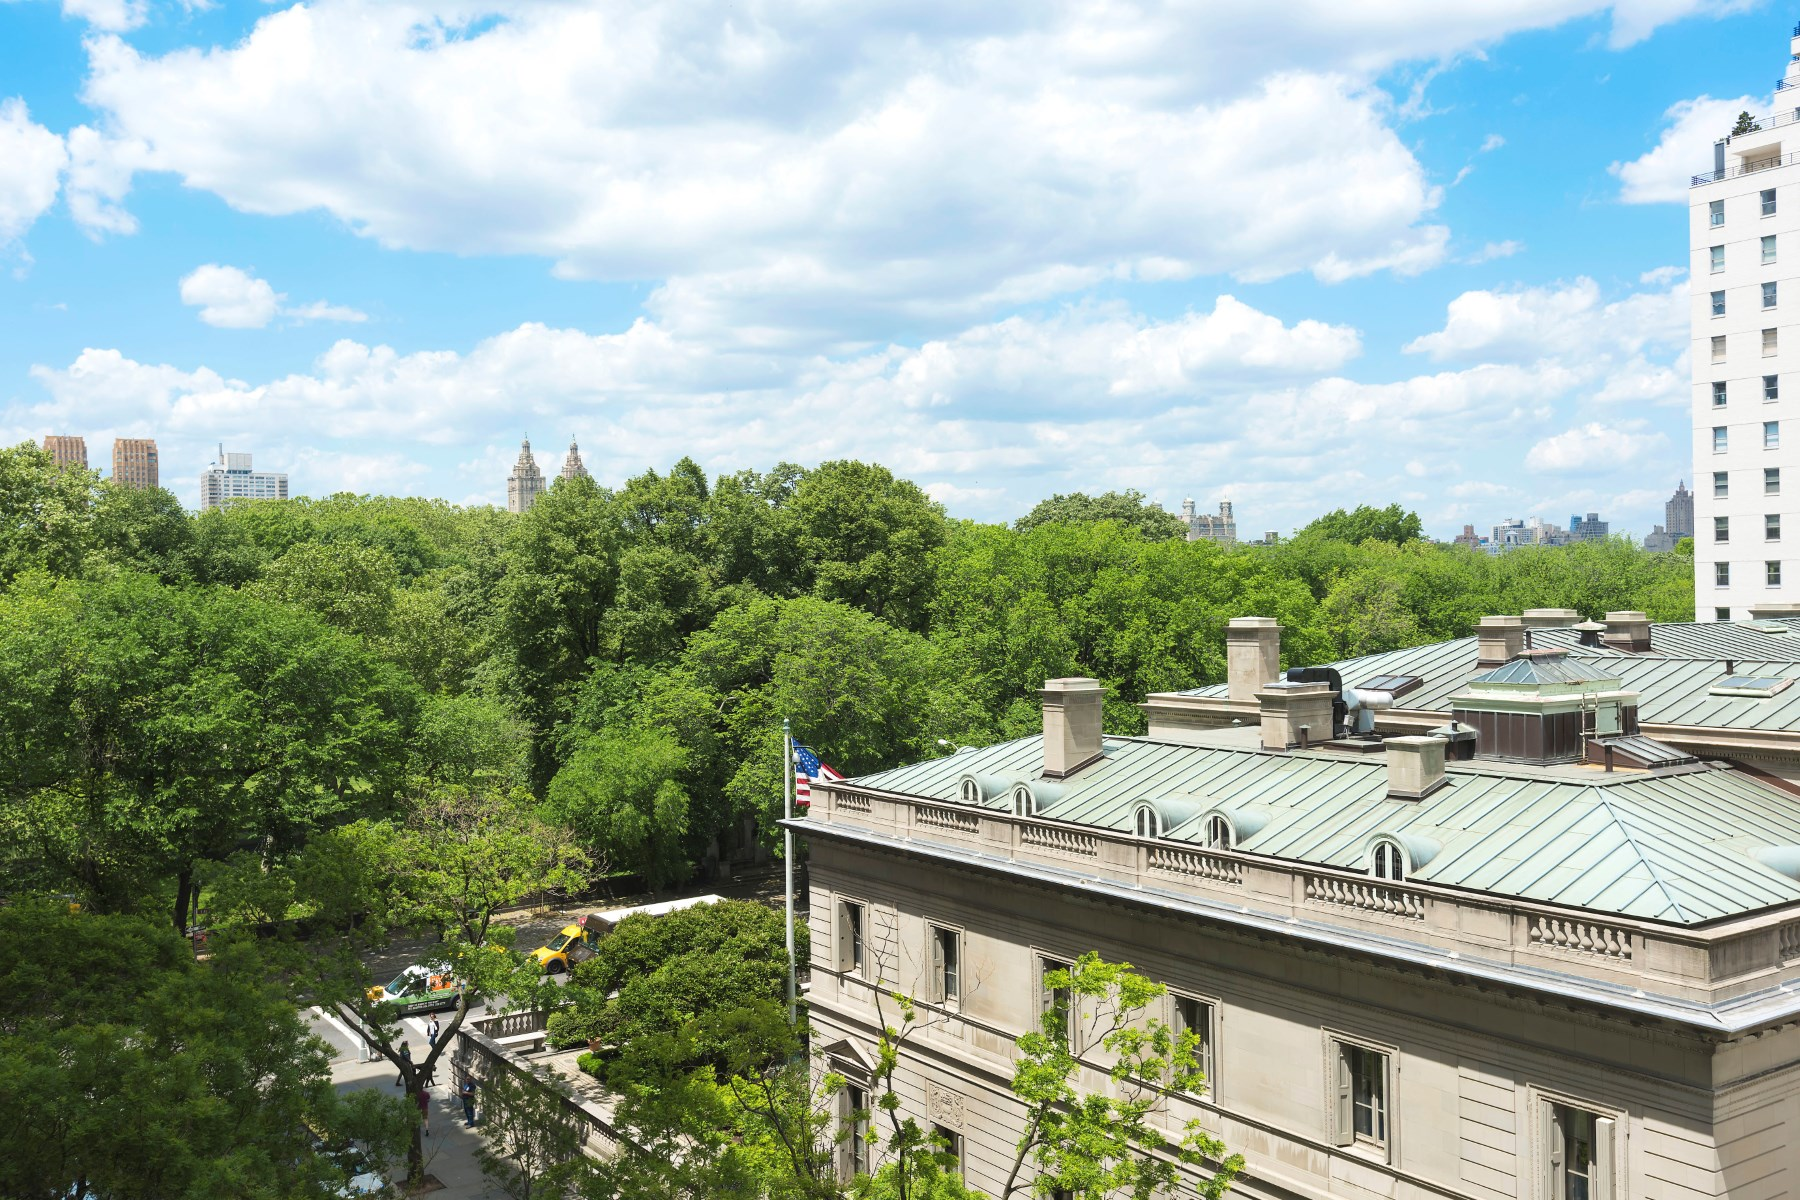 Co-op for Sale at Diamond in the Rough 4 East 70th Street Apt 7b Upper East Side, New York, New York 10021 United States